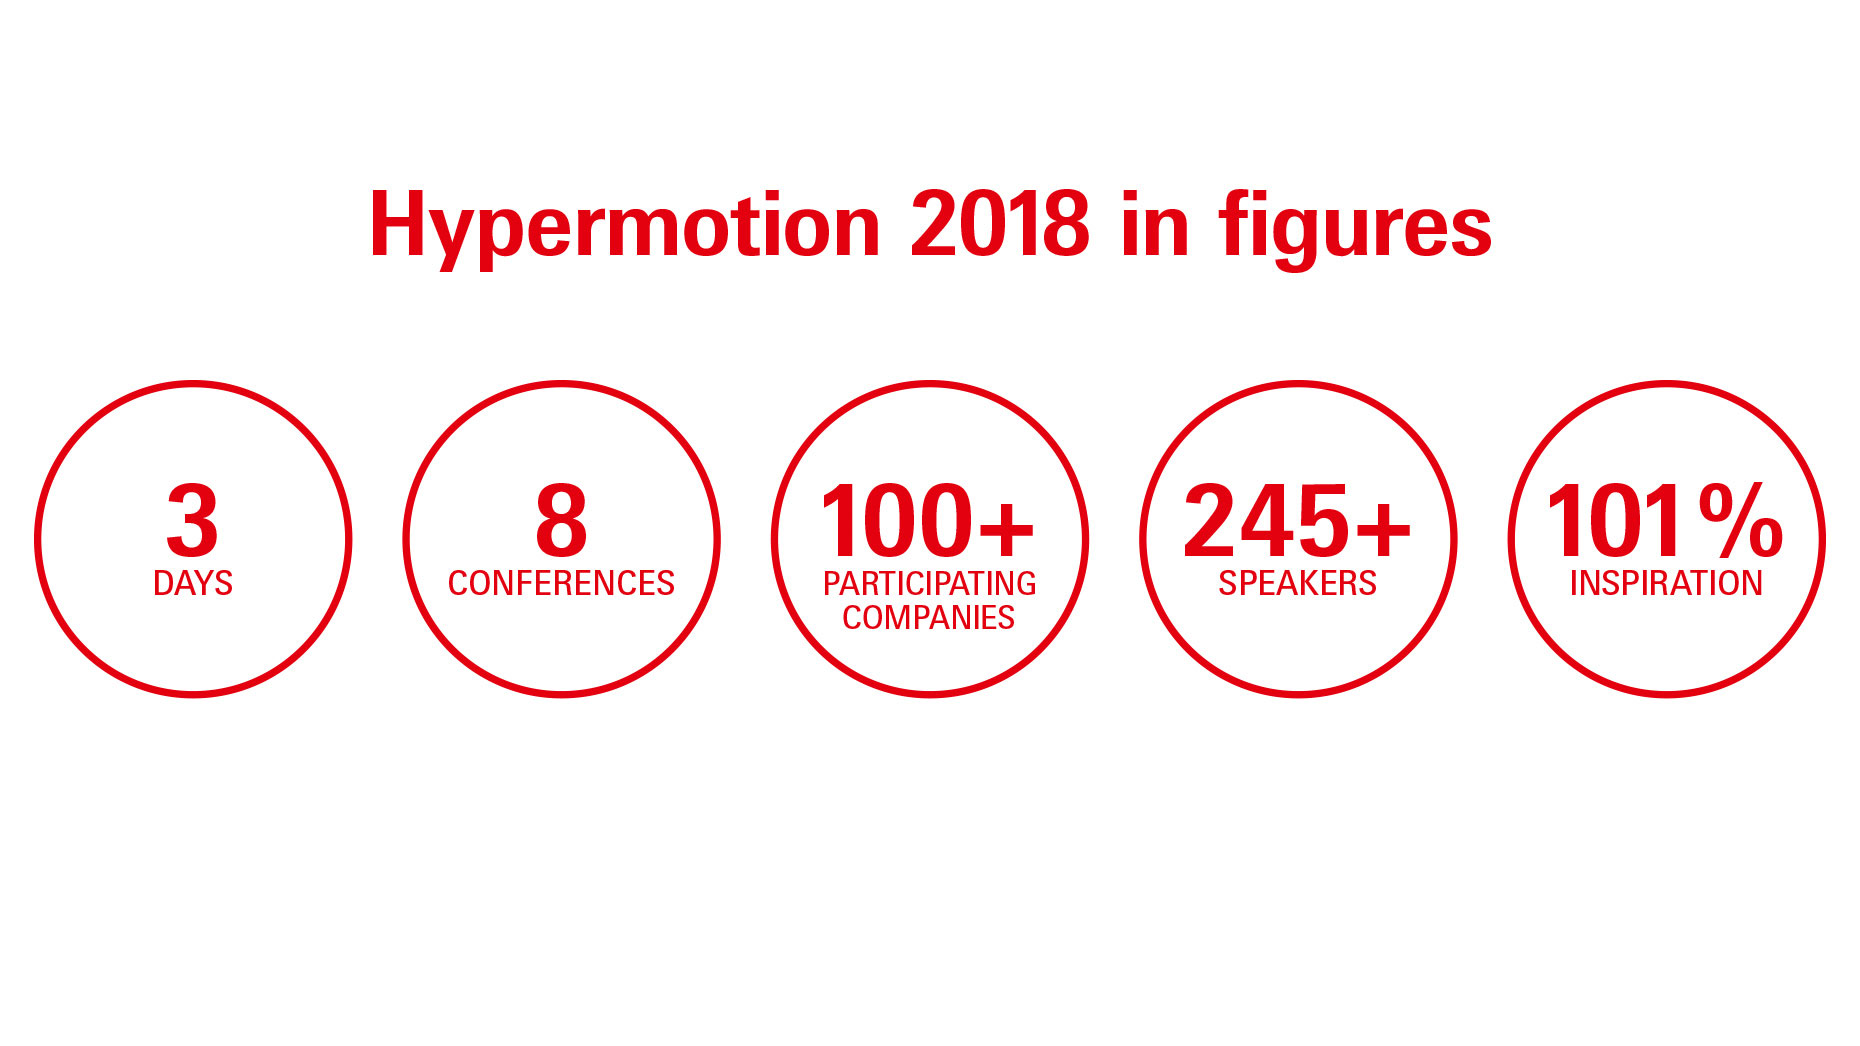 Quickfacts of Hypermotion